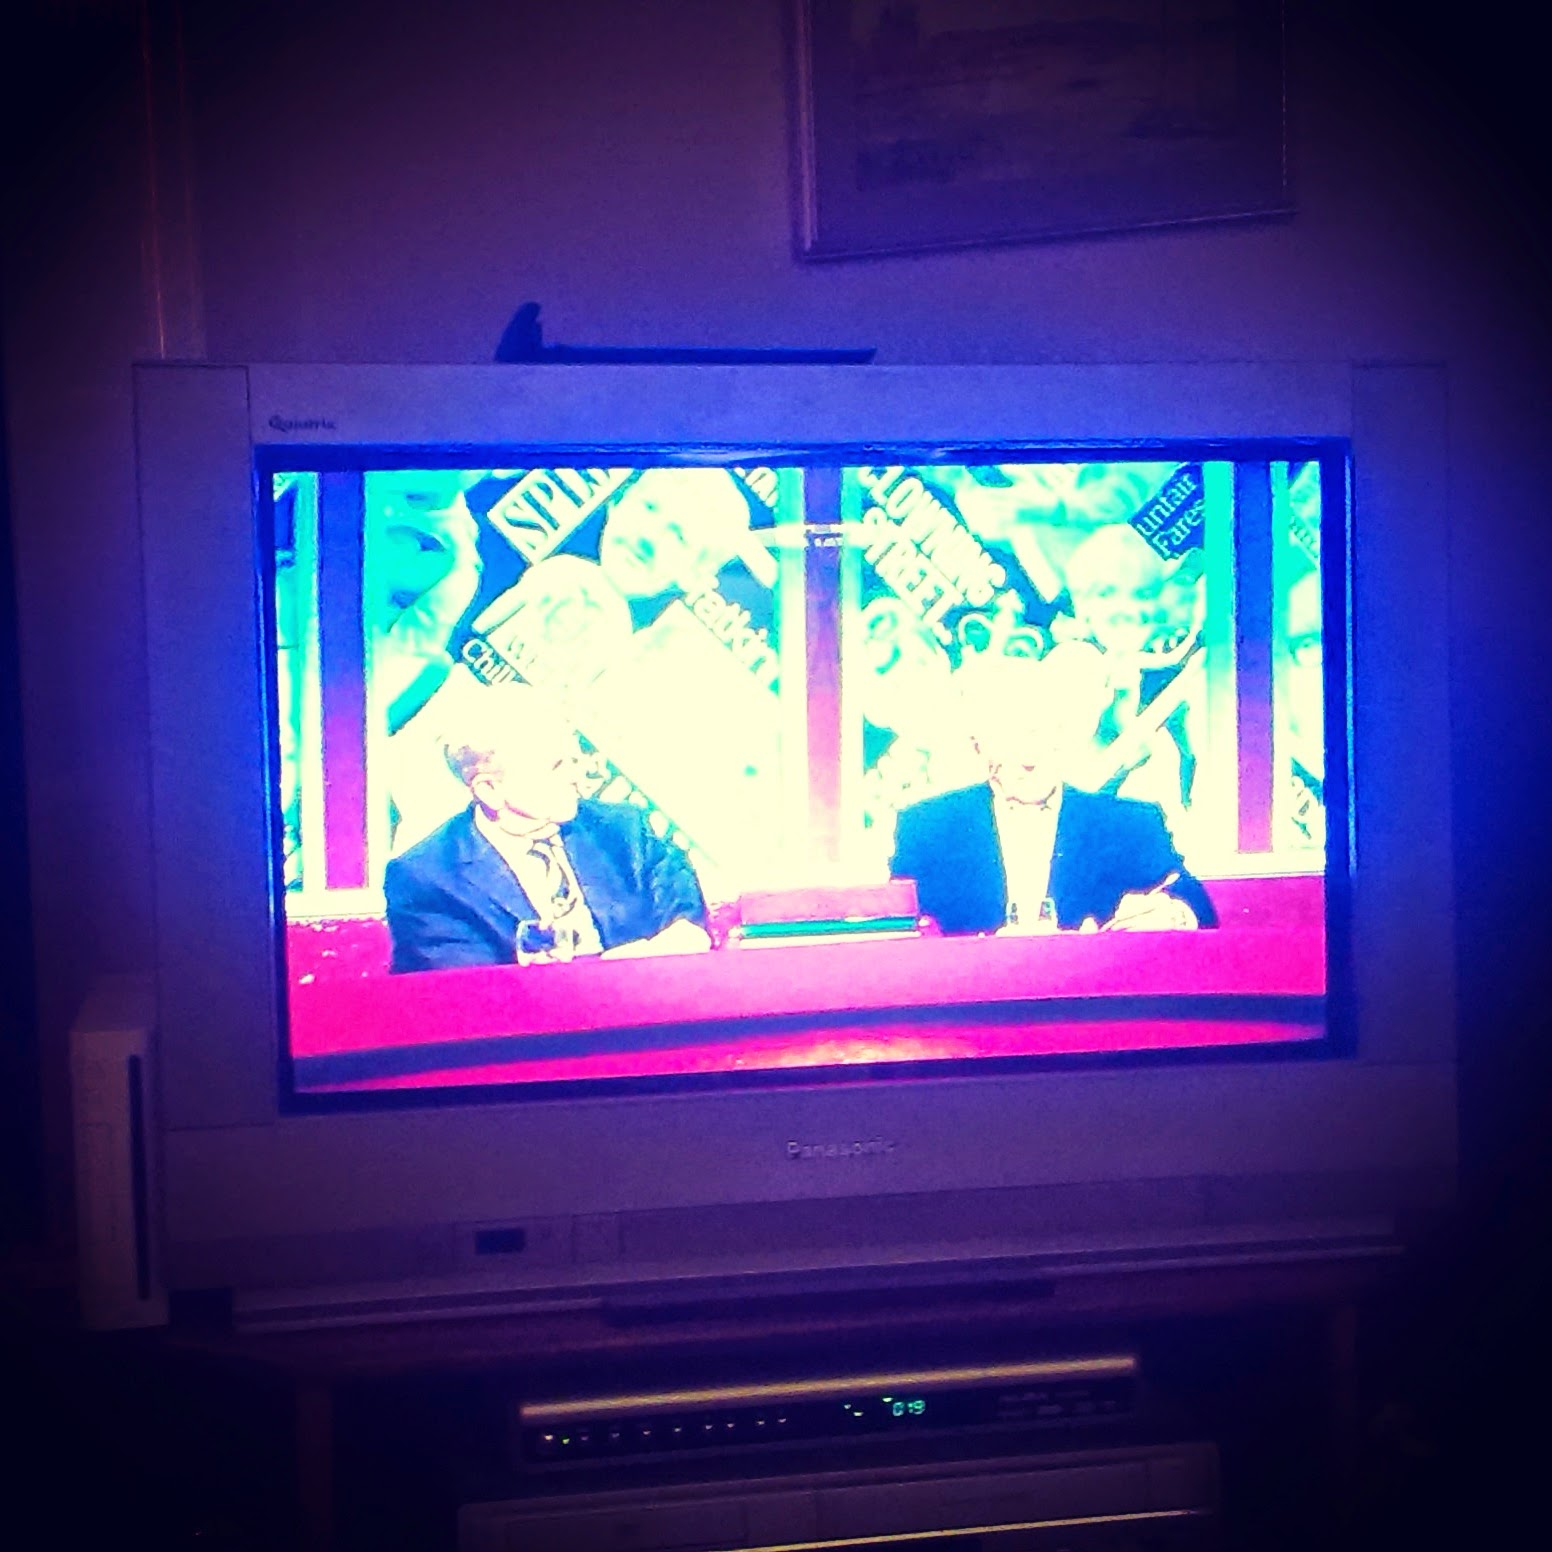 Watching Have I Got News For You